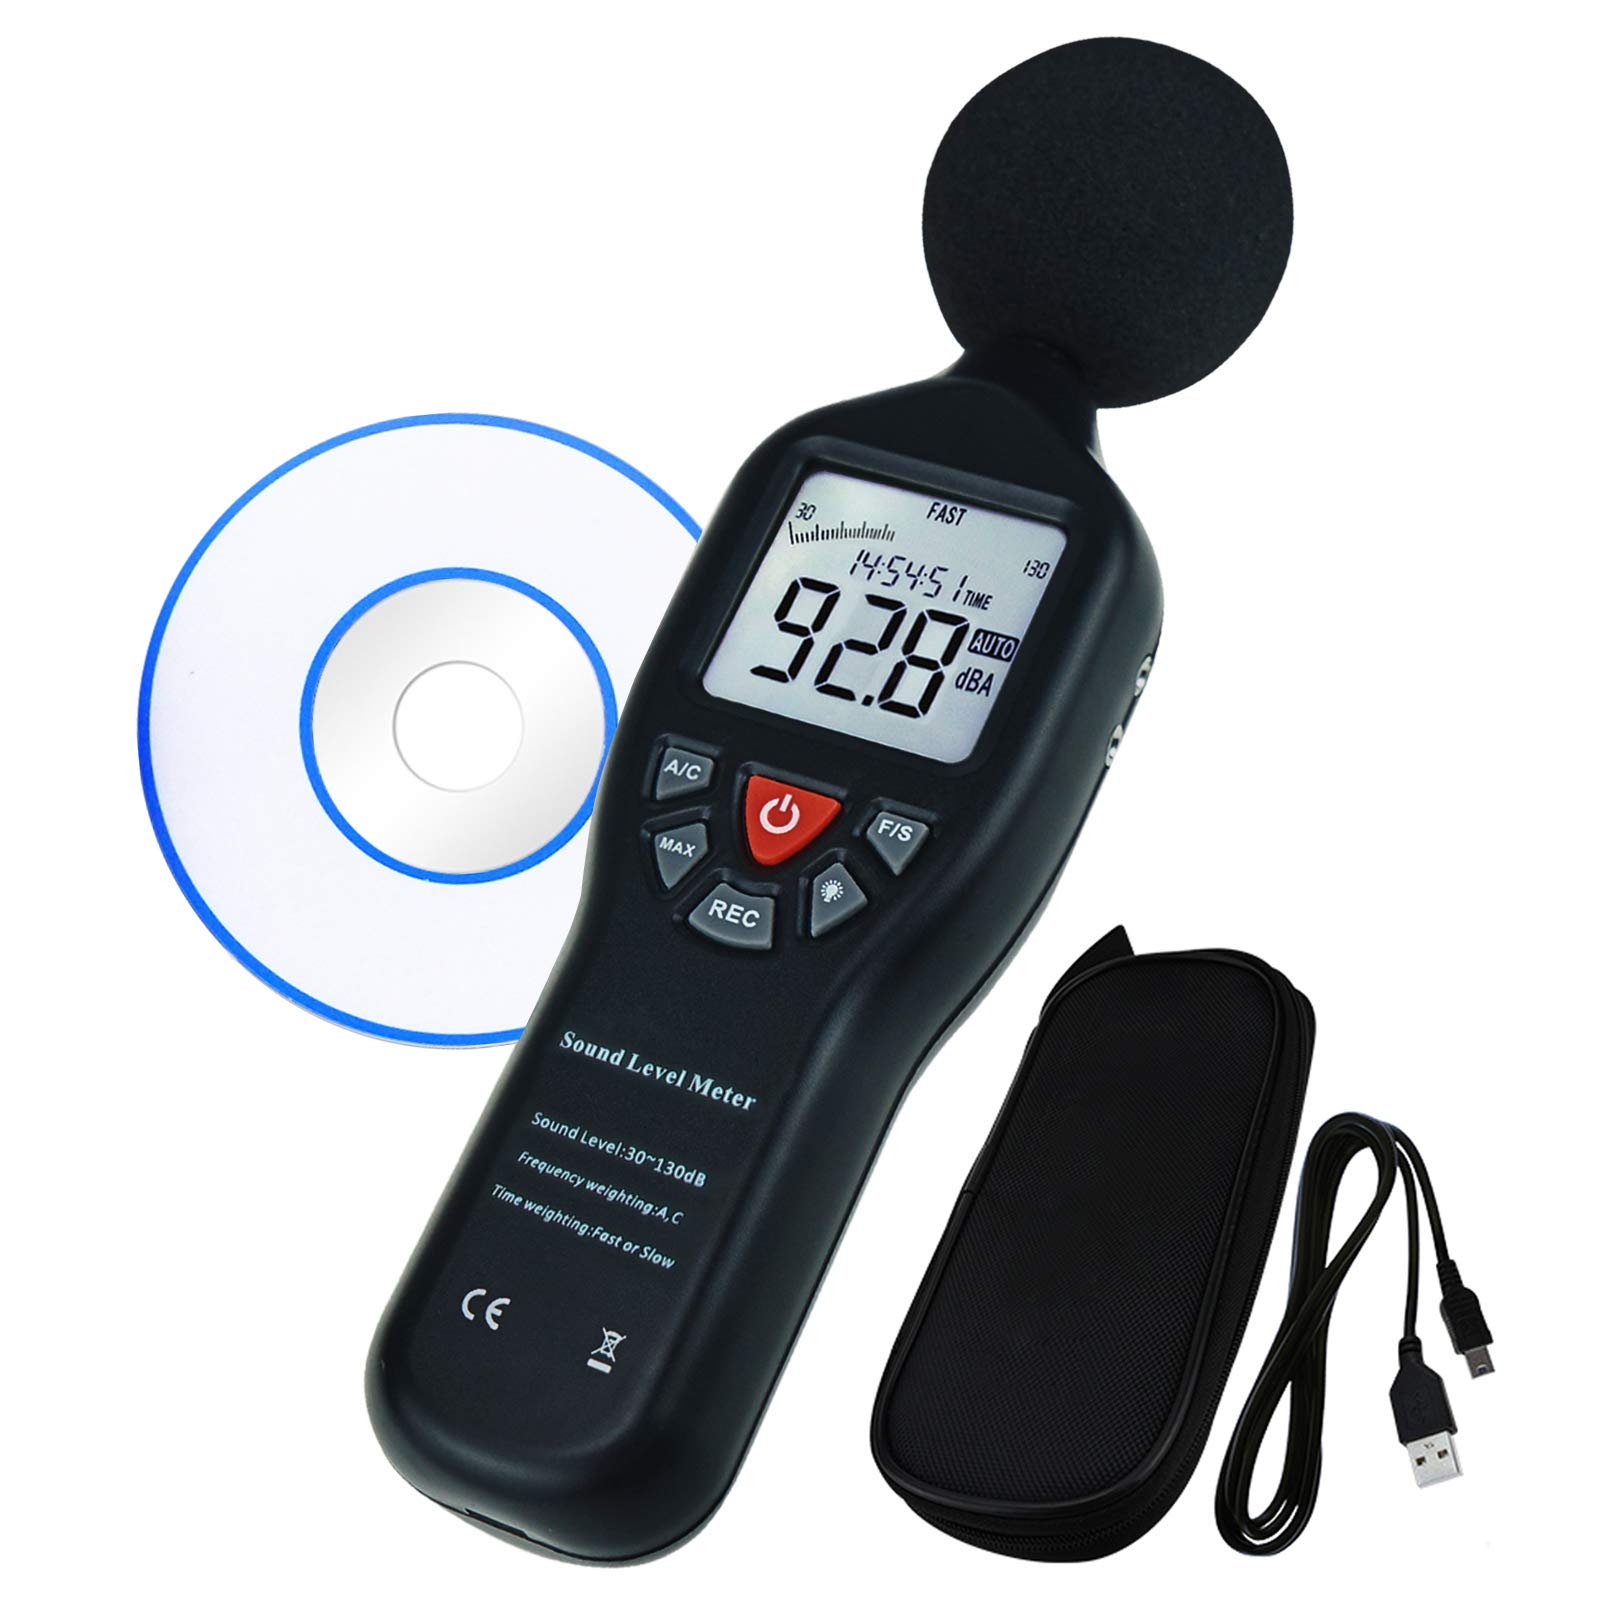 Data Logging Function Sound Level Decibel Meter with Backlight Display High Accuracy Measuring 30dB~130dB Instrument Compact Professional (with CD Software) by TEKCOPLUS